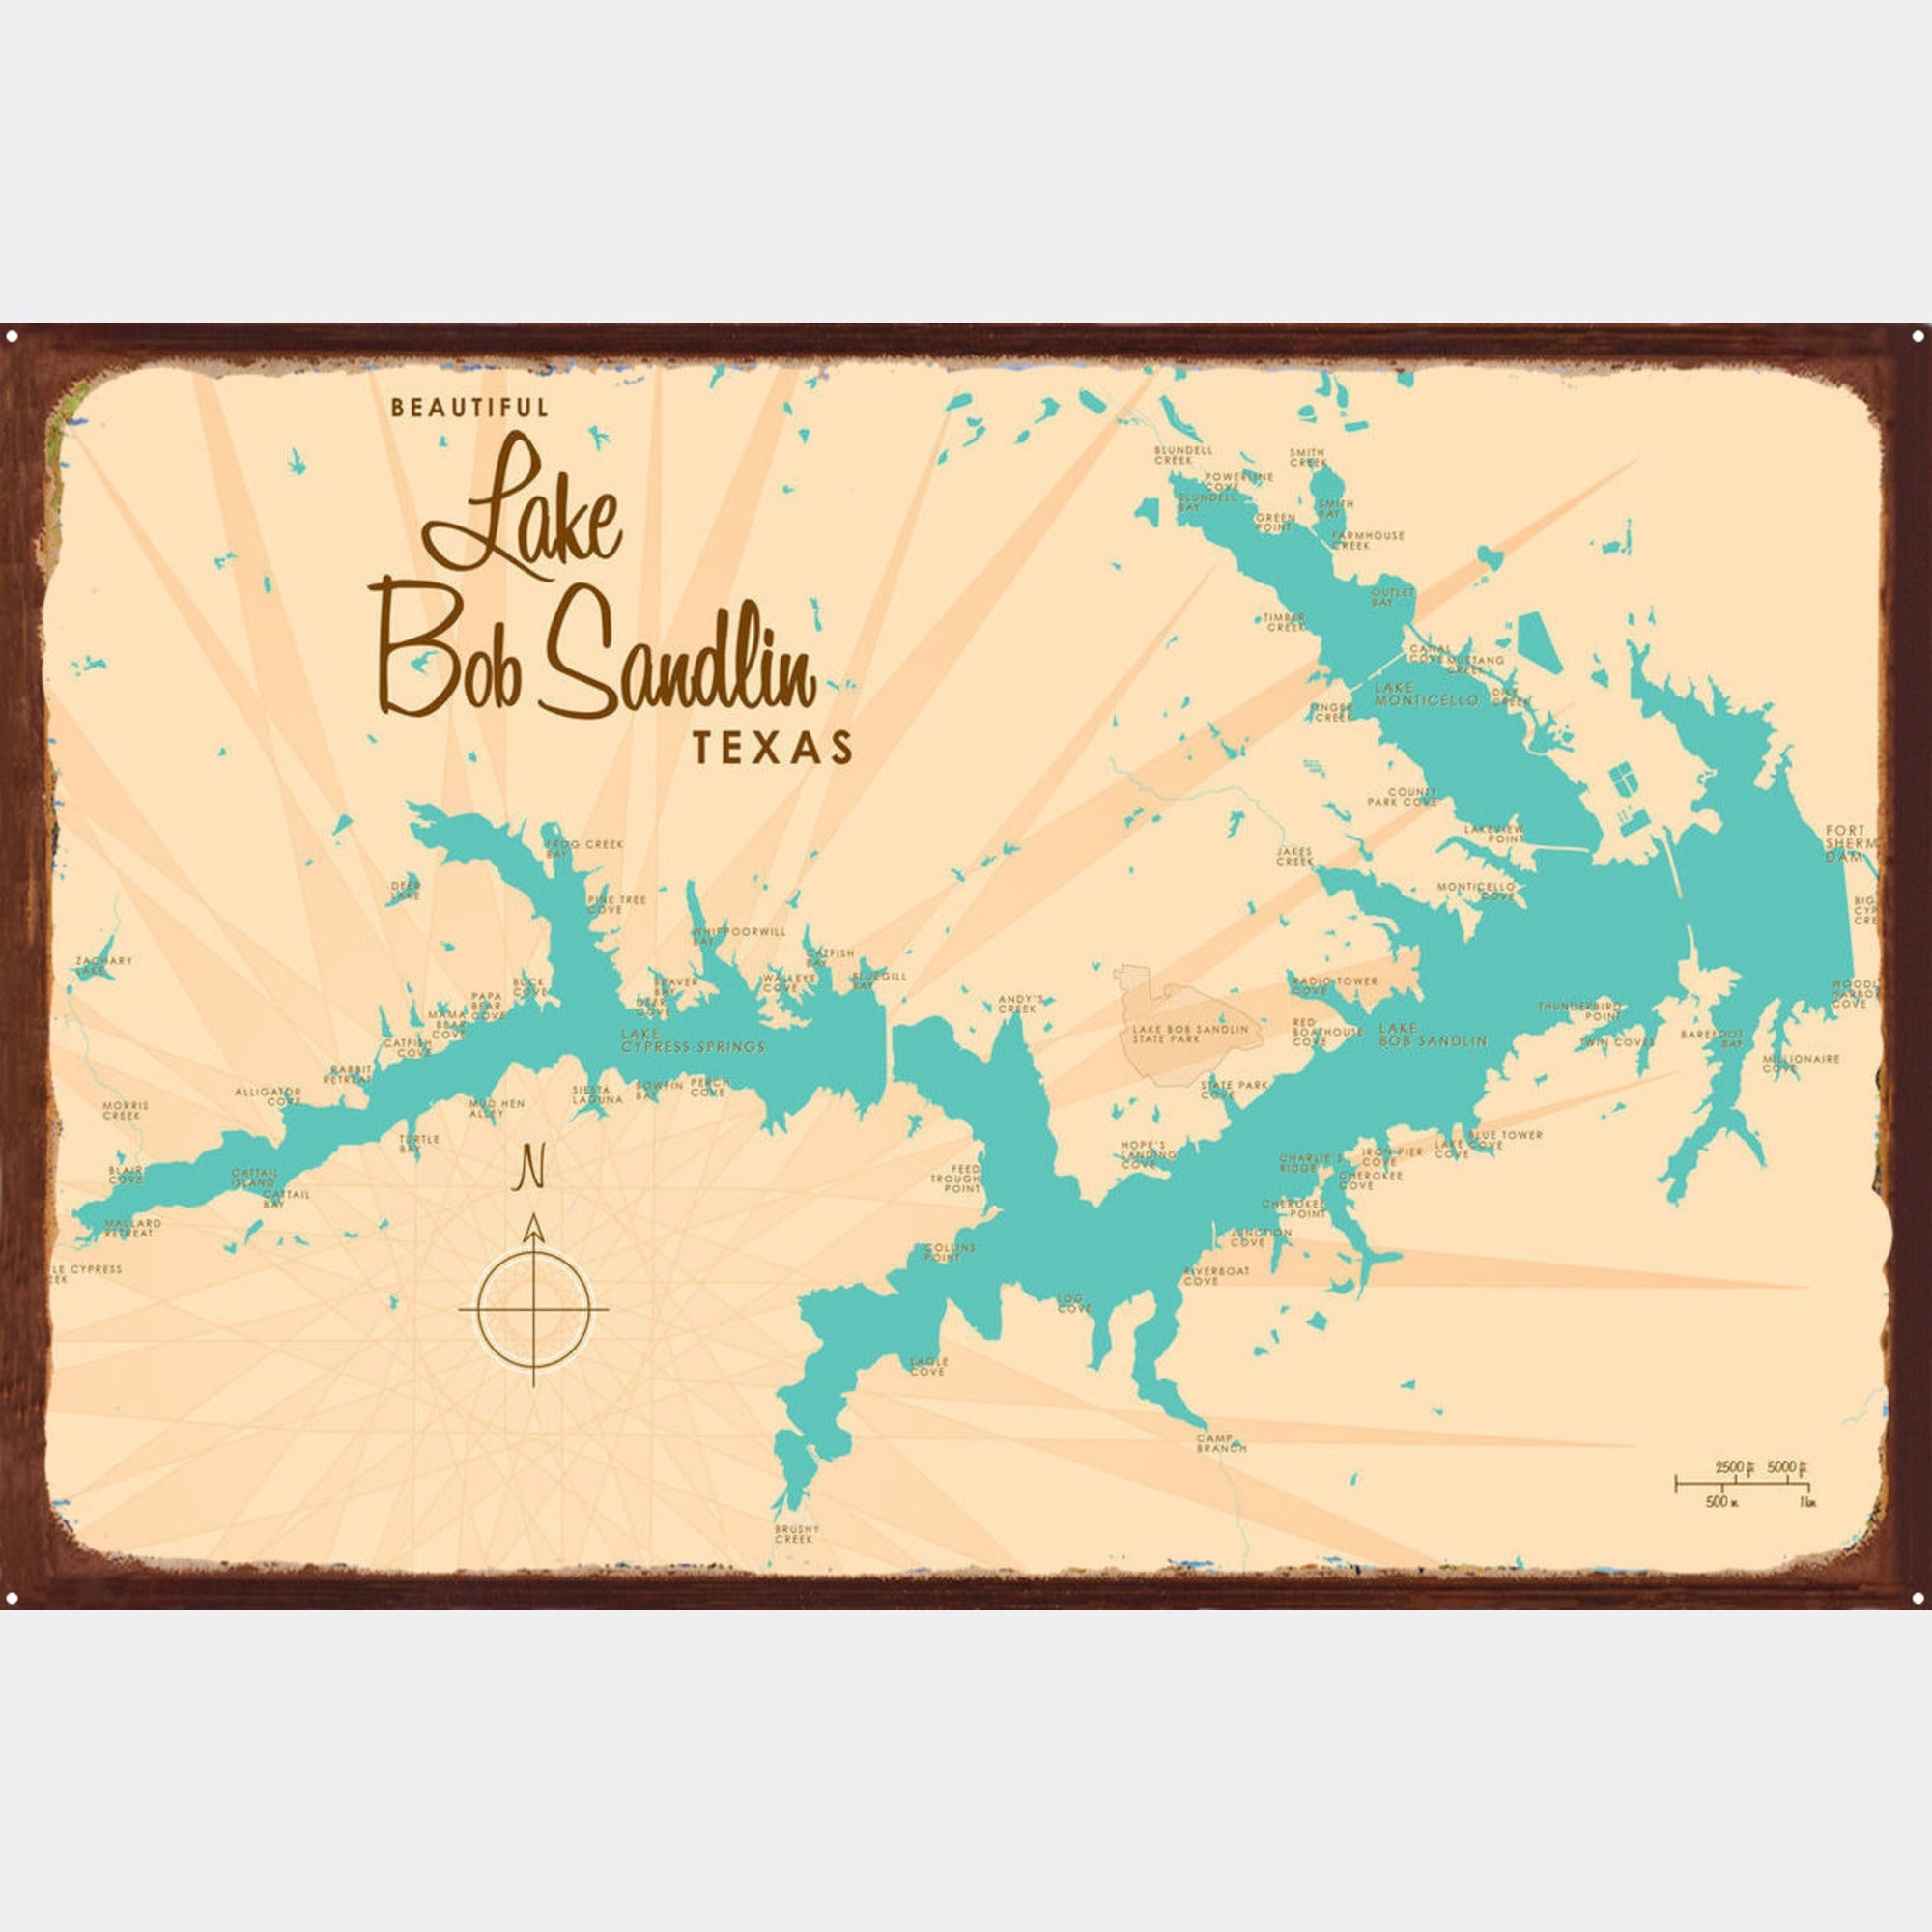 Lake Bob Sandlin Texas, Rustic Metal Sign Map Art